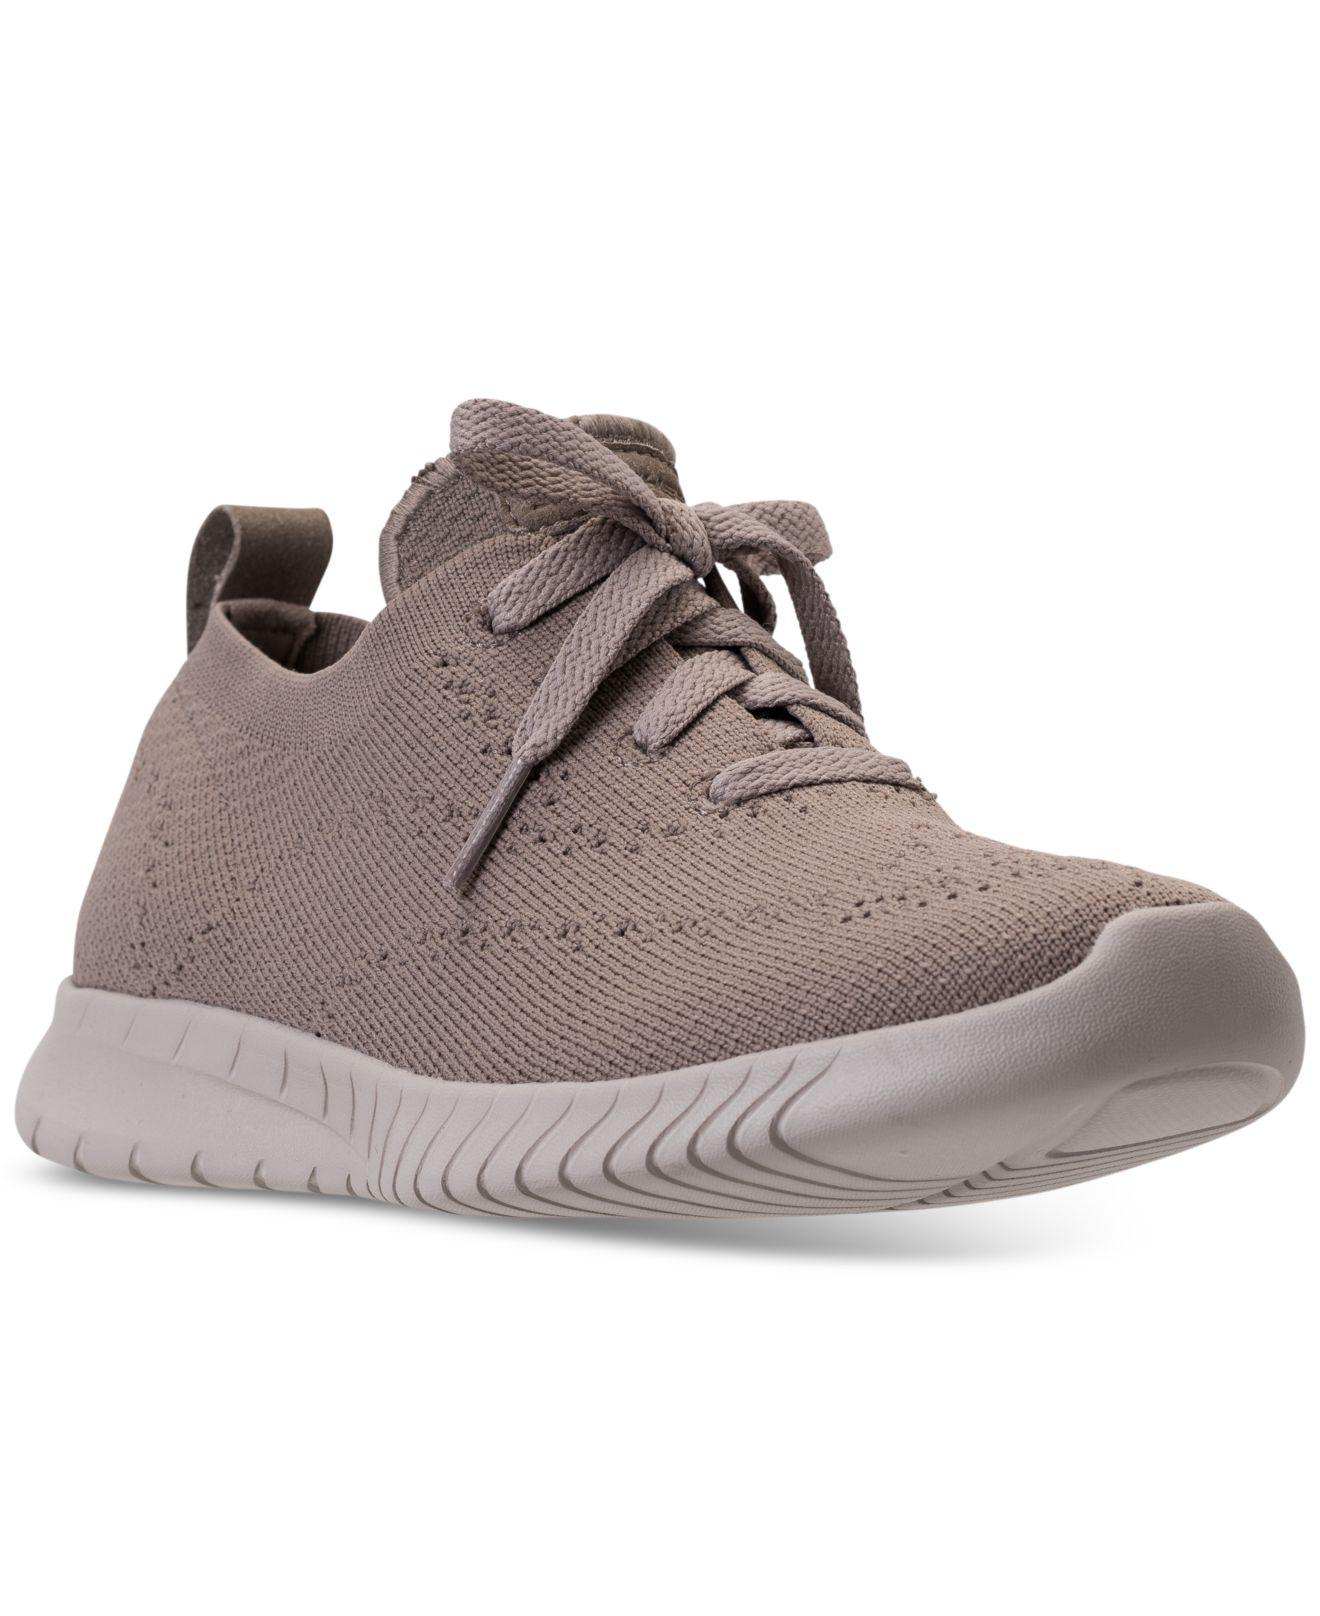 Femmes Wave-lite-keep It Simple Skechers Sneakers lSIsAp